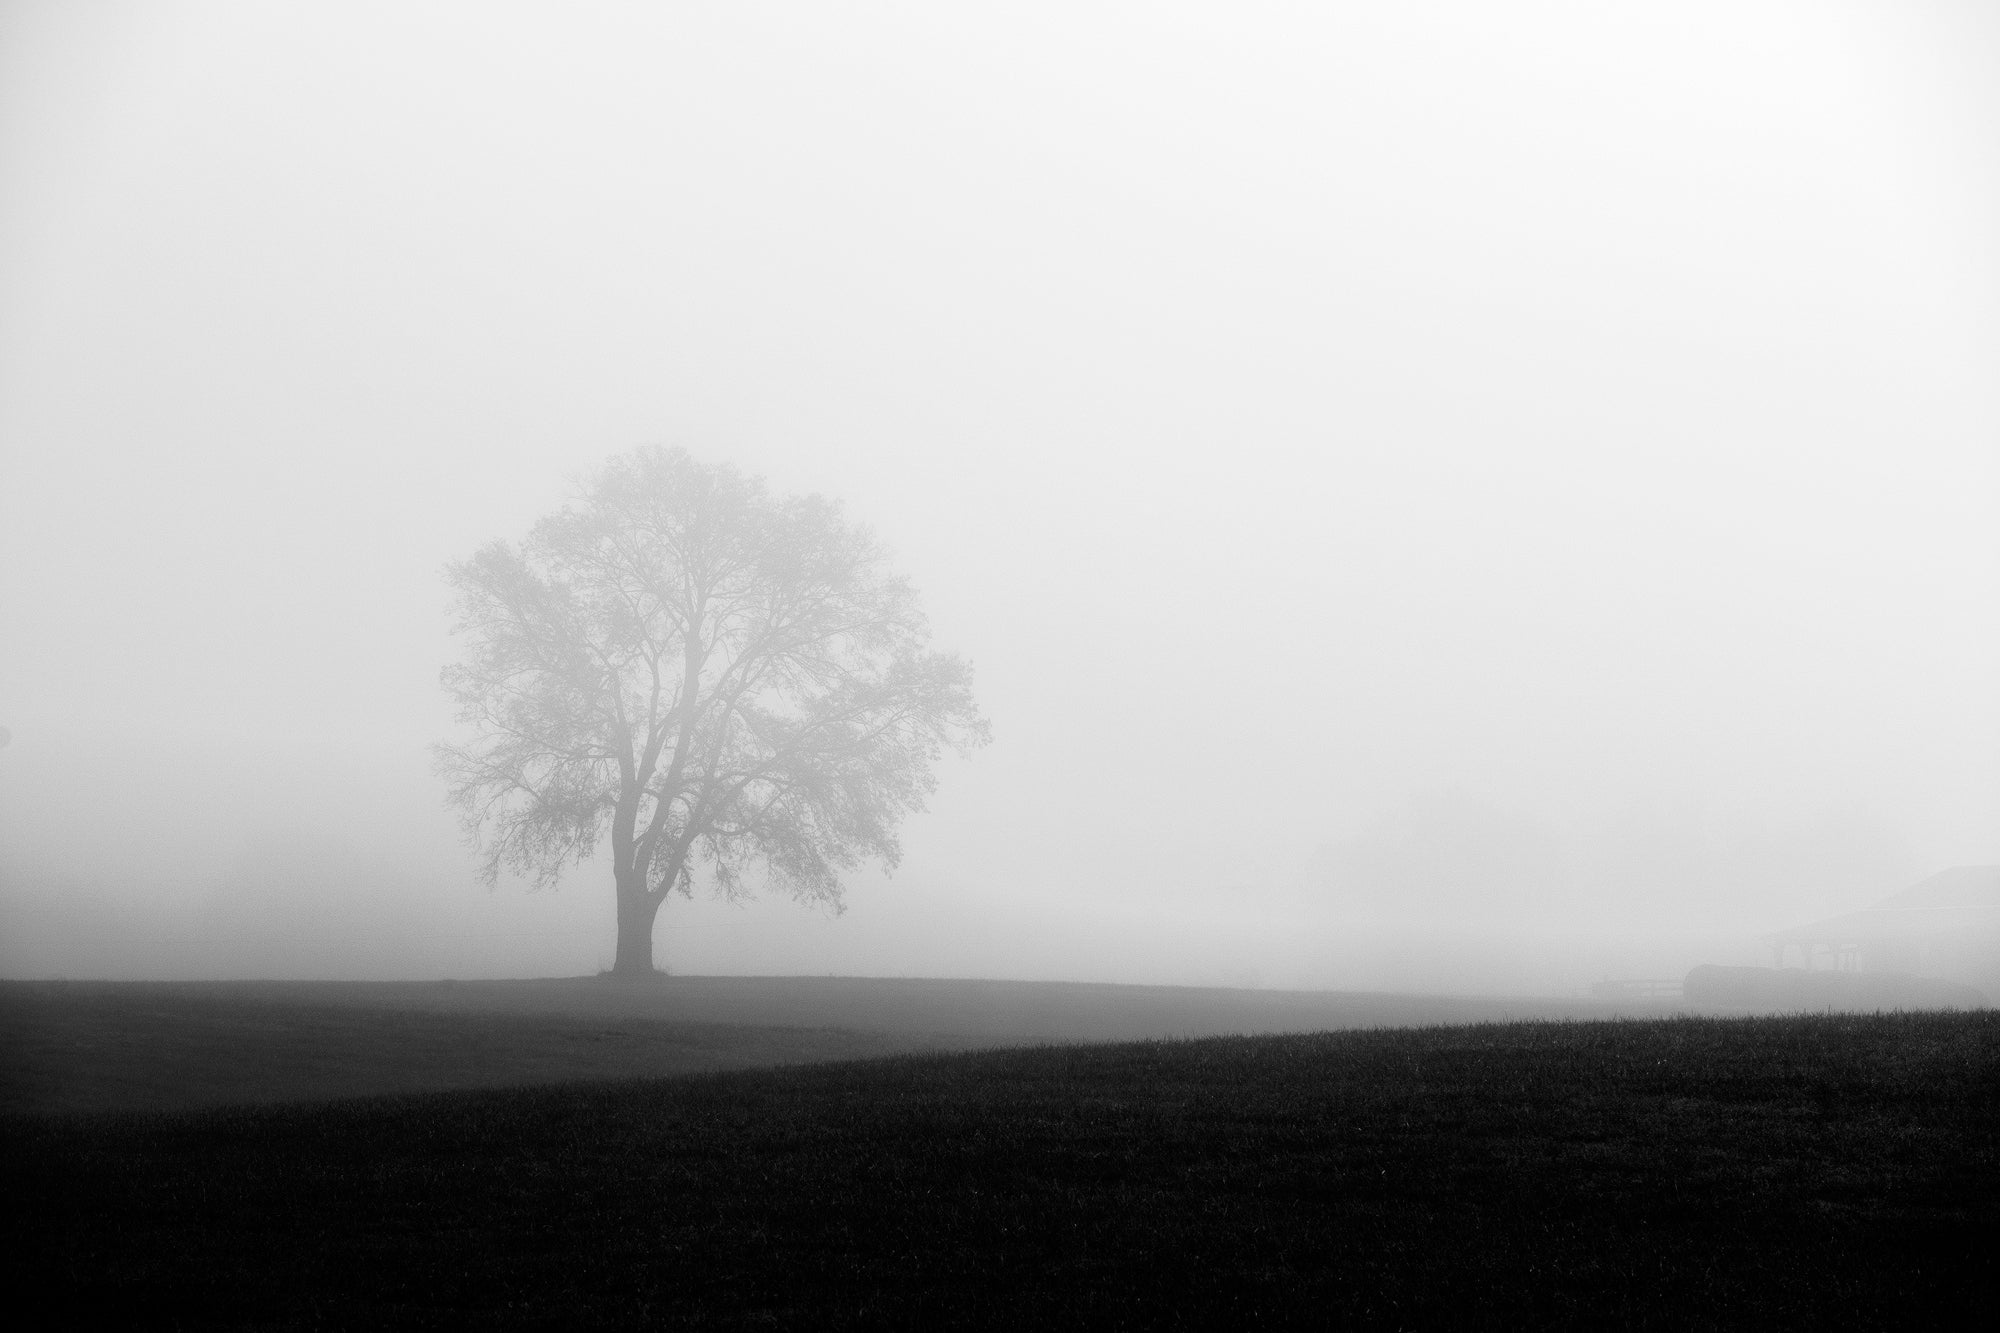 Foggy Landscape with a Lone Tree - Black and White Photograph by Keith Dotson